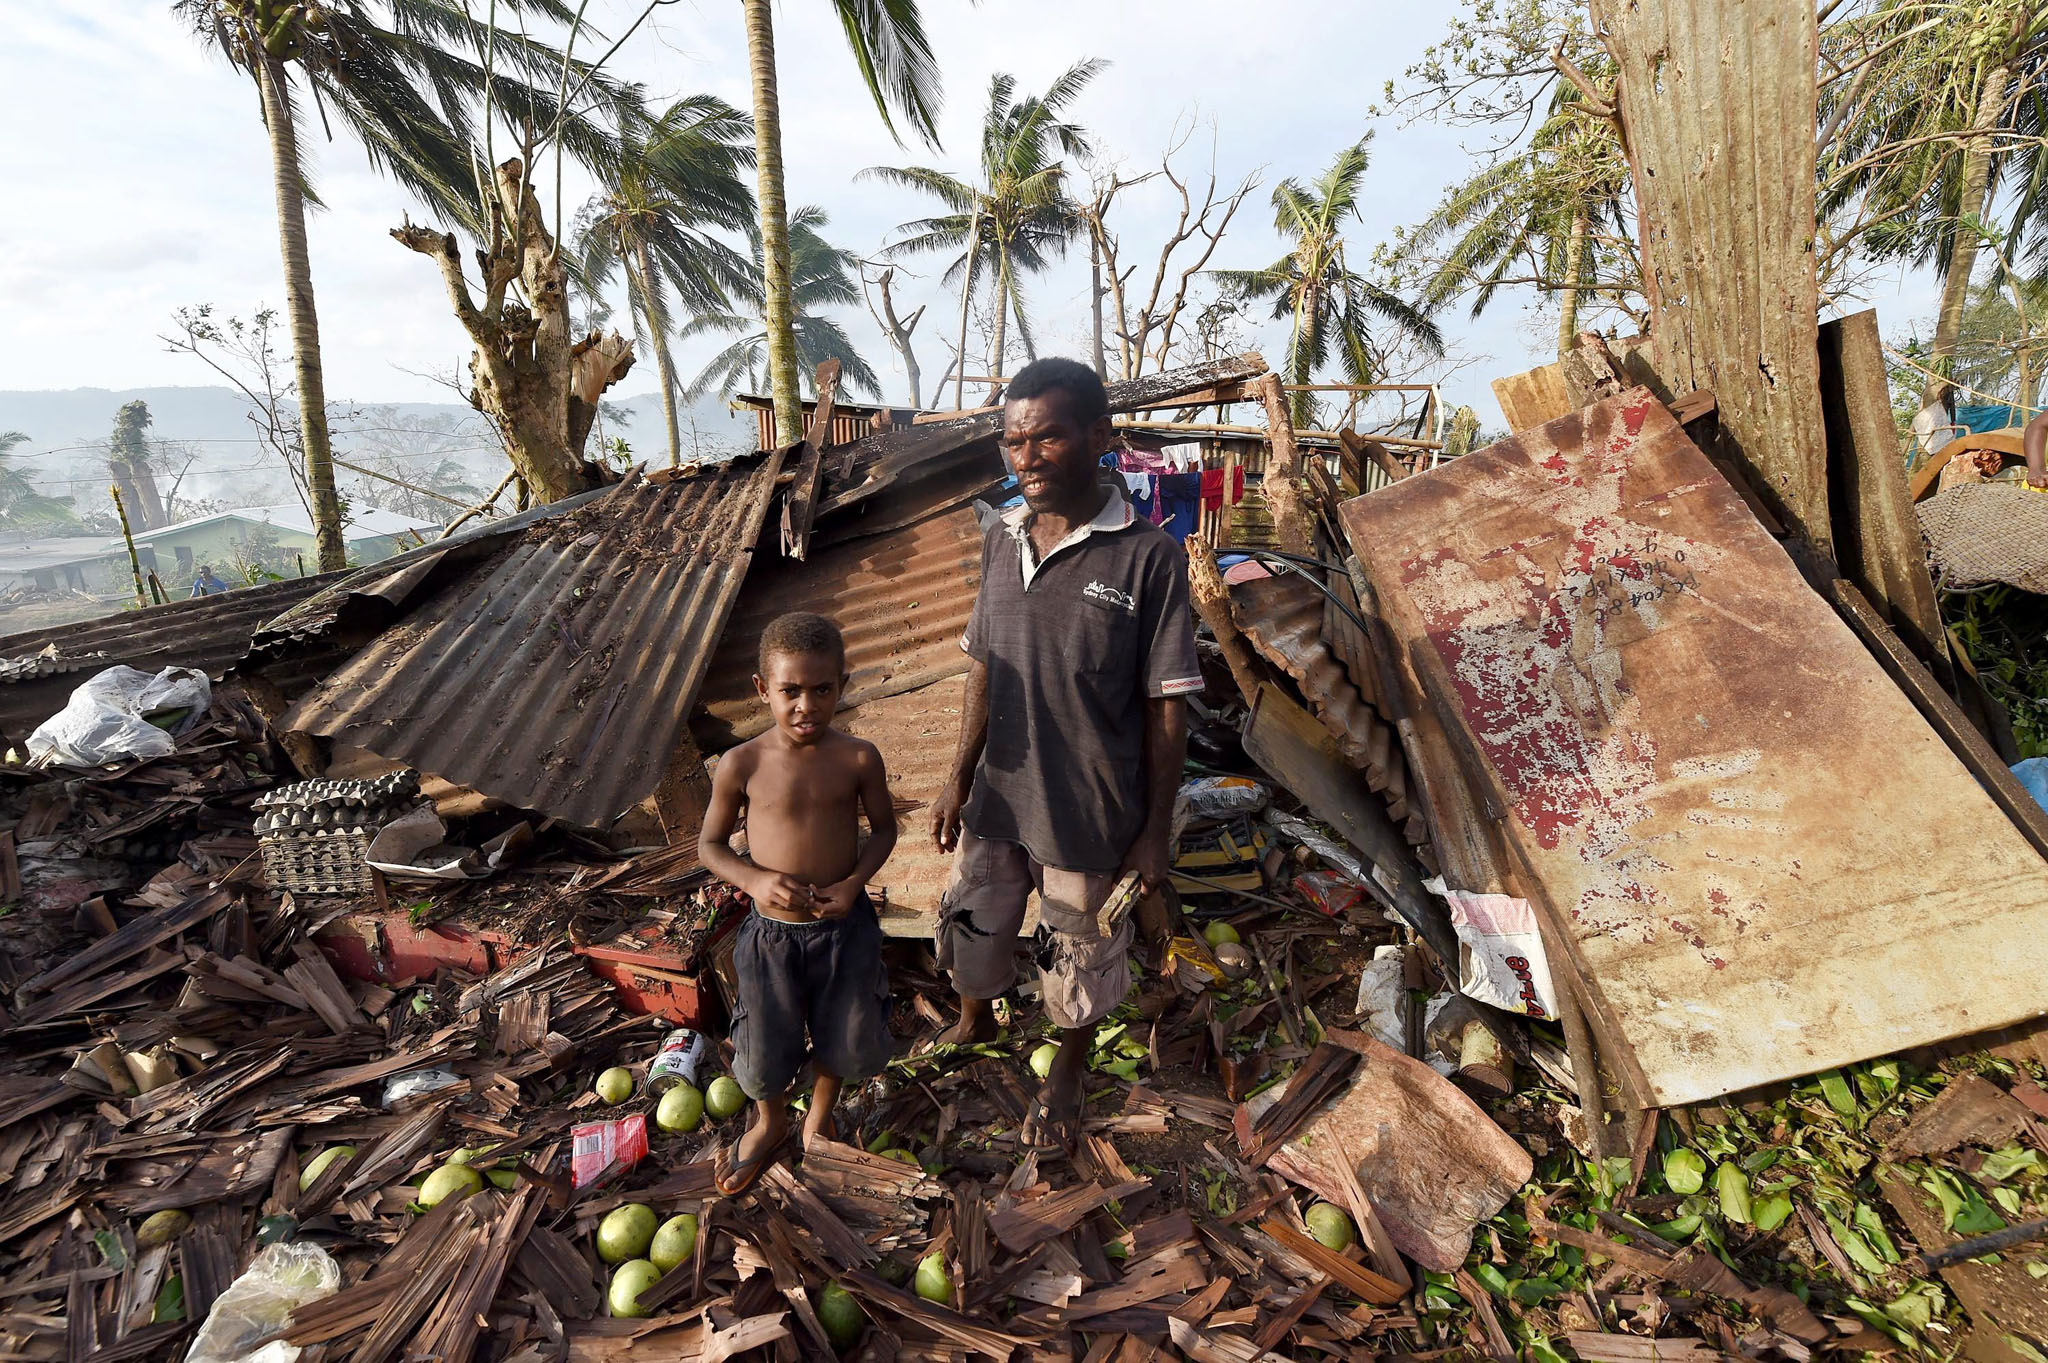 Cyclone Pam toll expected to rise...epa04664494 Samuel stands his father Phillip in what remained of their family home in Port Villa, capital of Vanuatu, 16 March  2015. International relief work was under way 16 March in Vanuatu and Tuvalu, impoverished island nations ravaged by the worst tropical cyclone on record in the South Pacific with aid agencies saying conditions in cyclone-ravaged Vanuatu are among the most challenging they have faced. Tropical Cyclone Pam left a trail of destruction when it ripped through the region at the start of the weekend with winds in excess of 250 kilometres per hour, heavy downpours and flooding.  EPA/DAVE HUNT AUSTRALIA AND NEW ZEALAND OUT